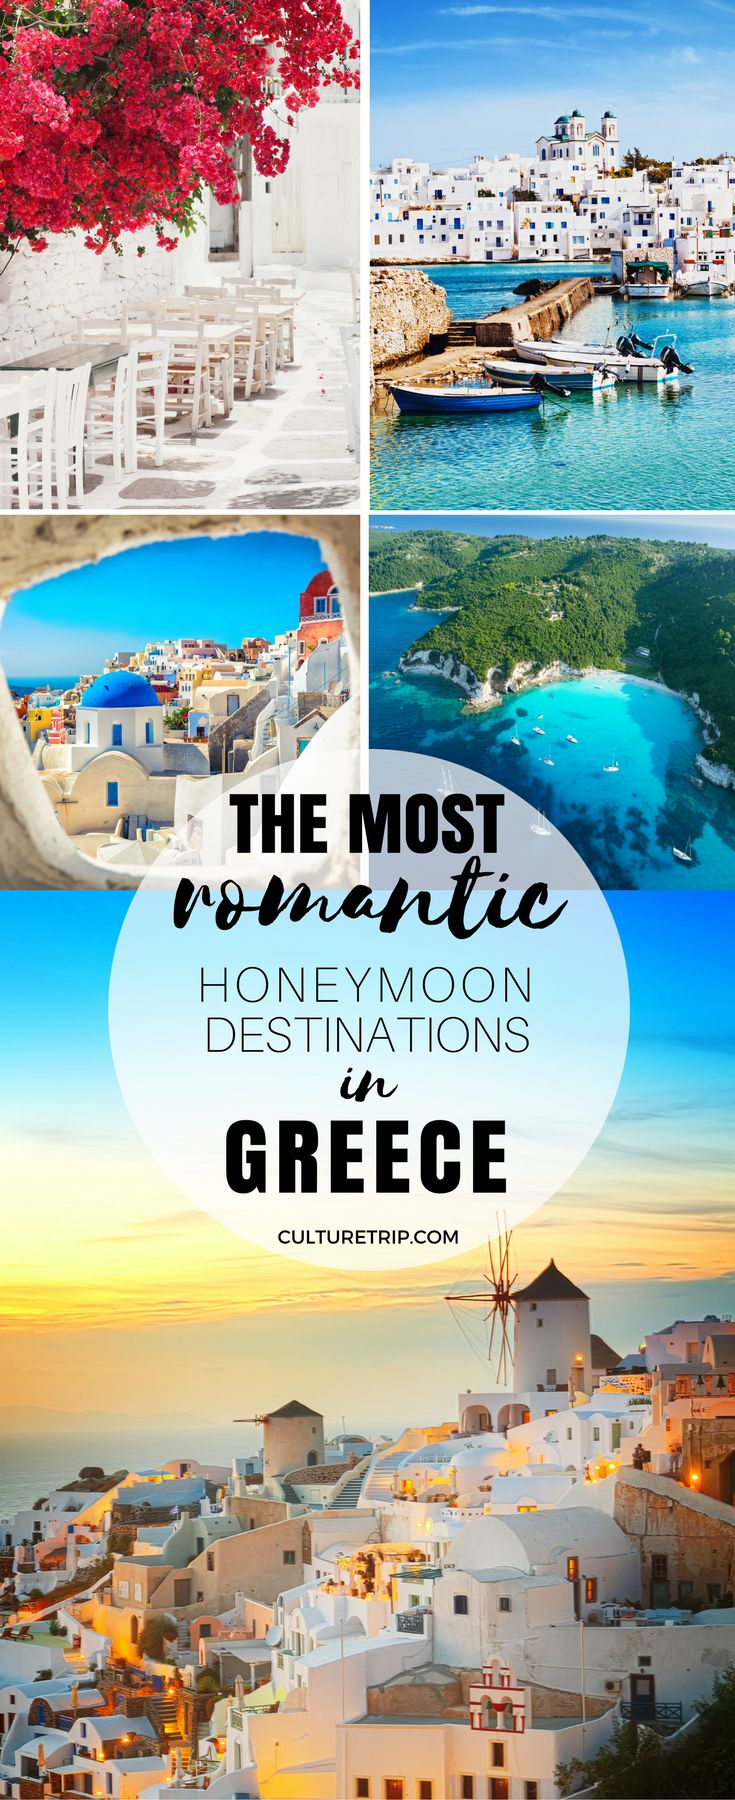 The Most Romantic Honeymoon Destinations in Greece|Pinterest: @theculturetrip